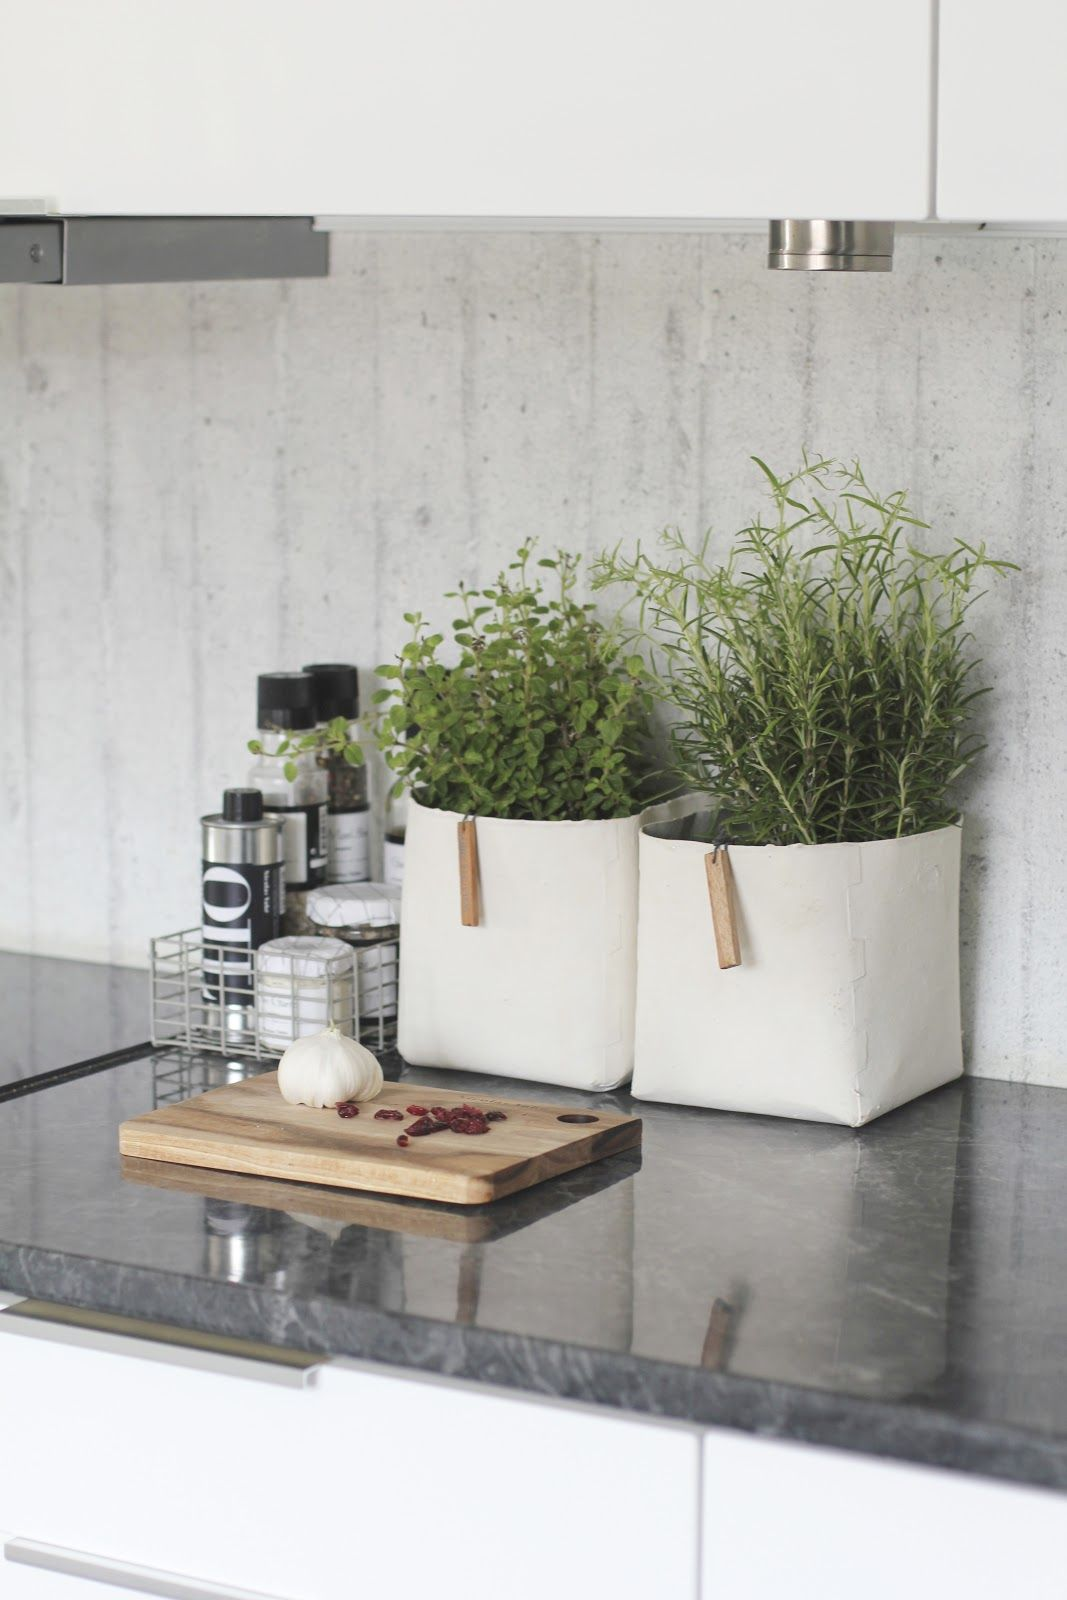 How to Decorate your Kitchen With Herbs: 40+ Ideas | Arbeitsplatte ...